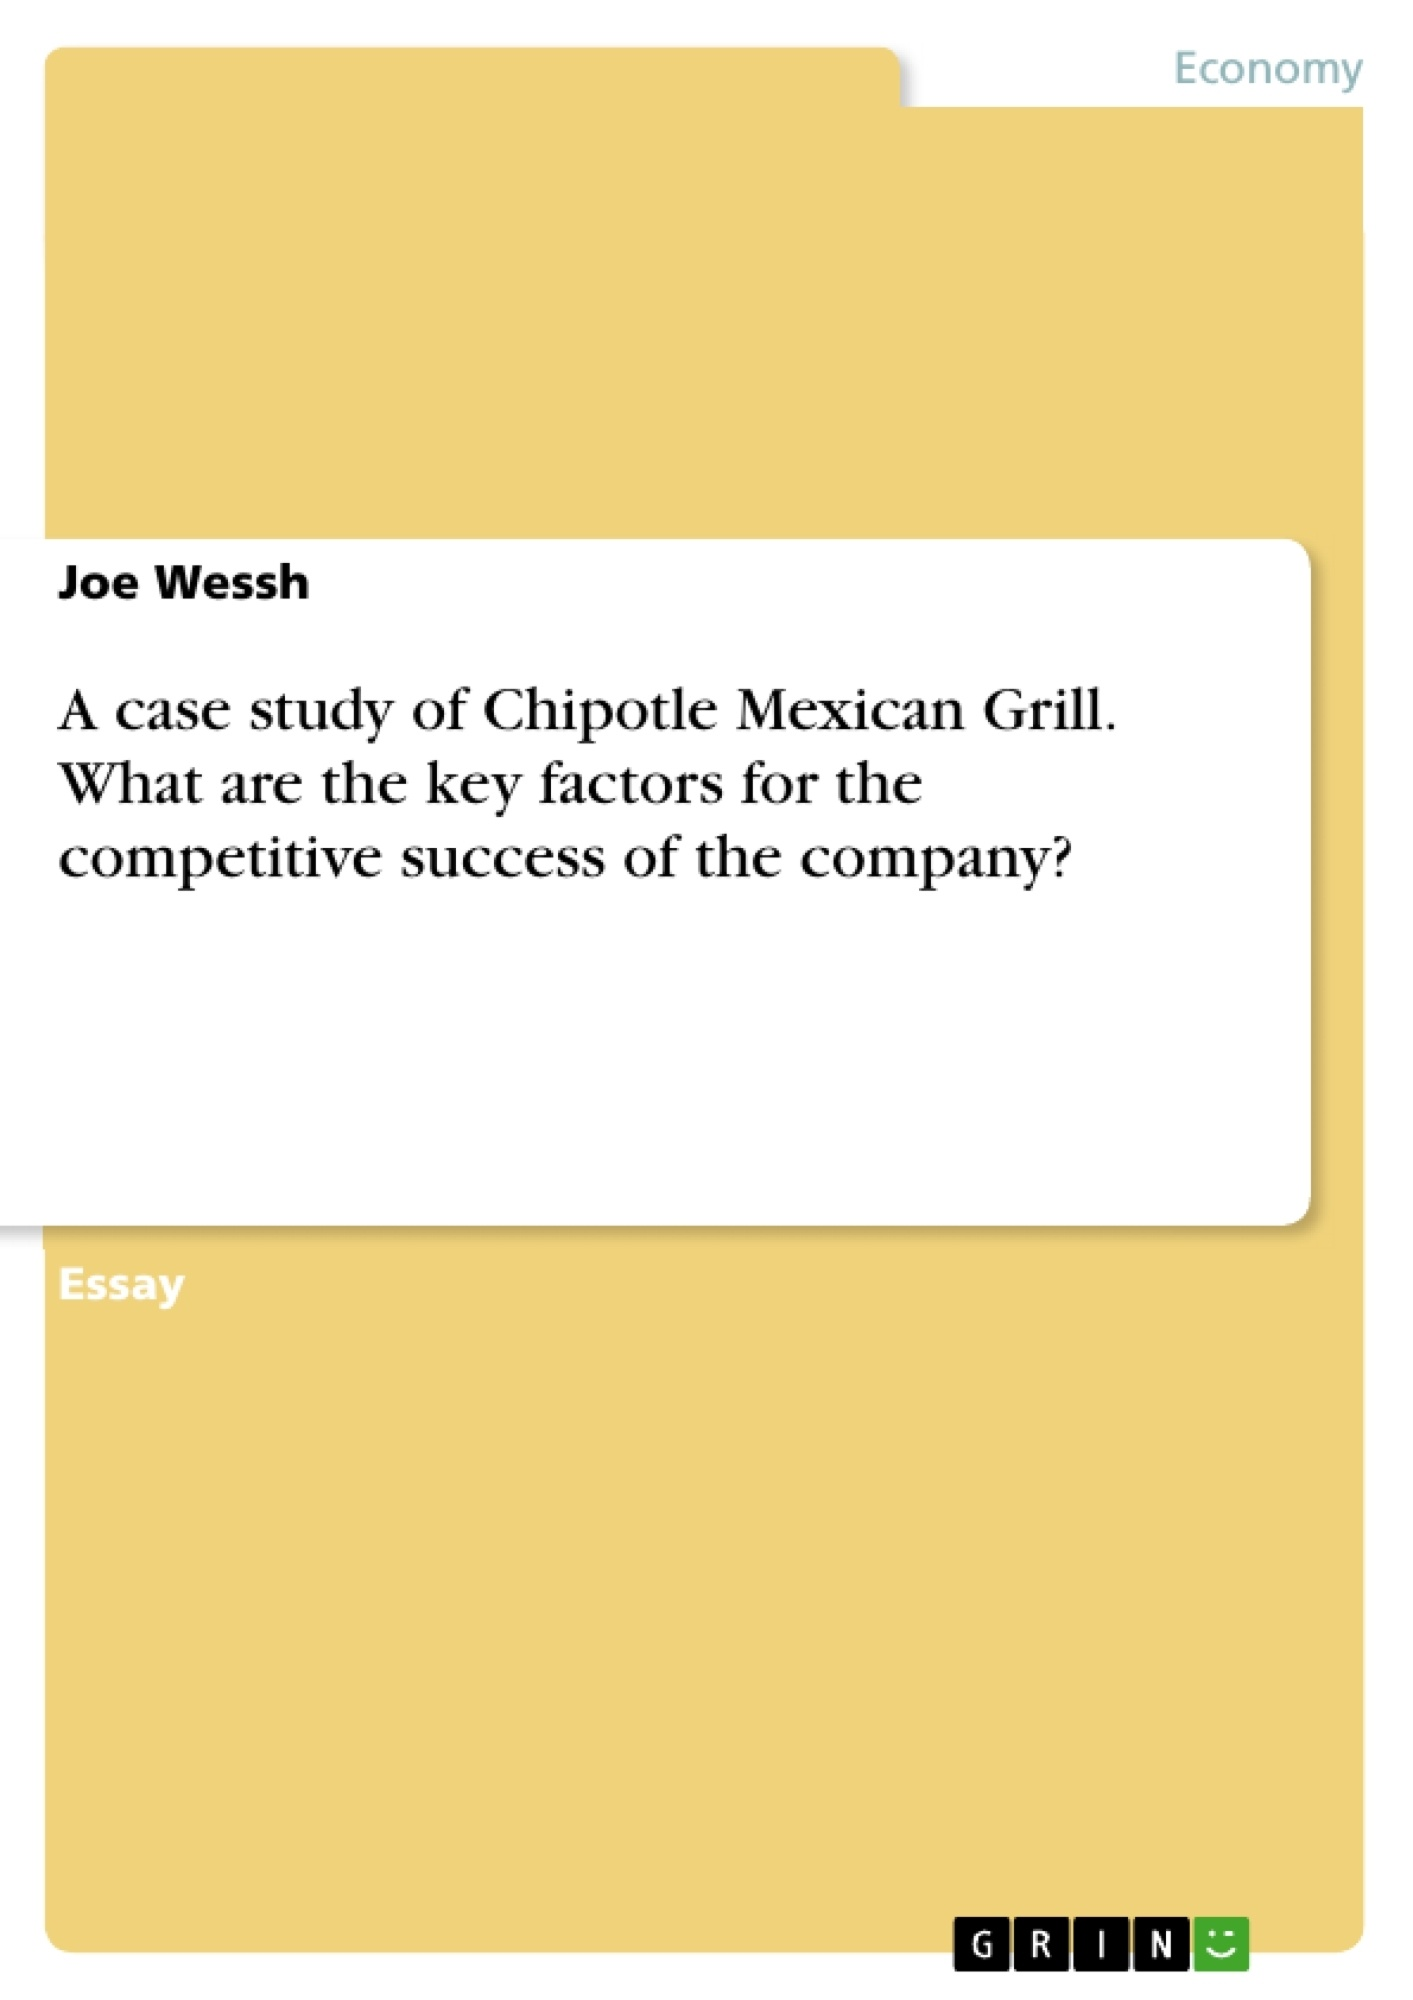 Title: A case study of Chipotle Mexican Grill. What are the key factors for the competitive success of the company?